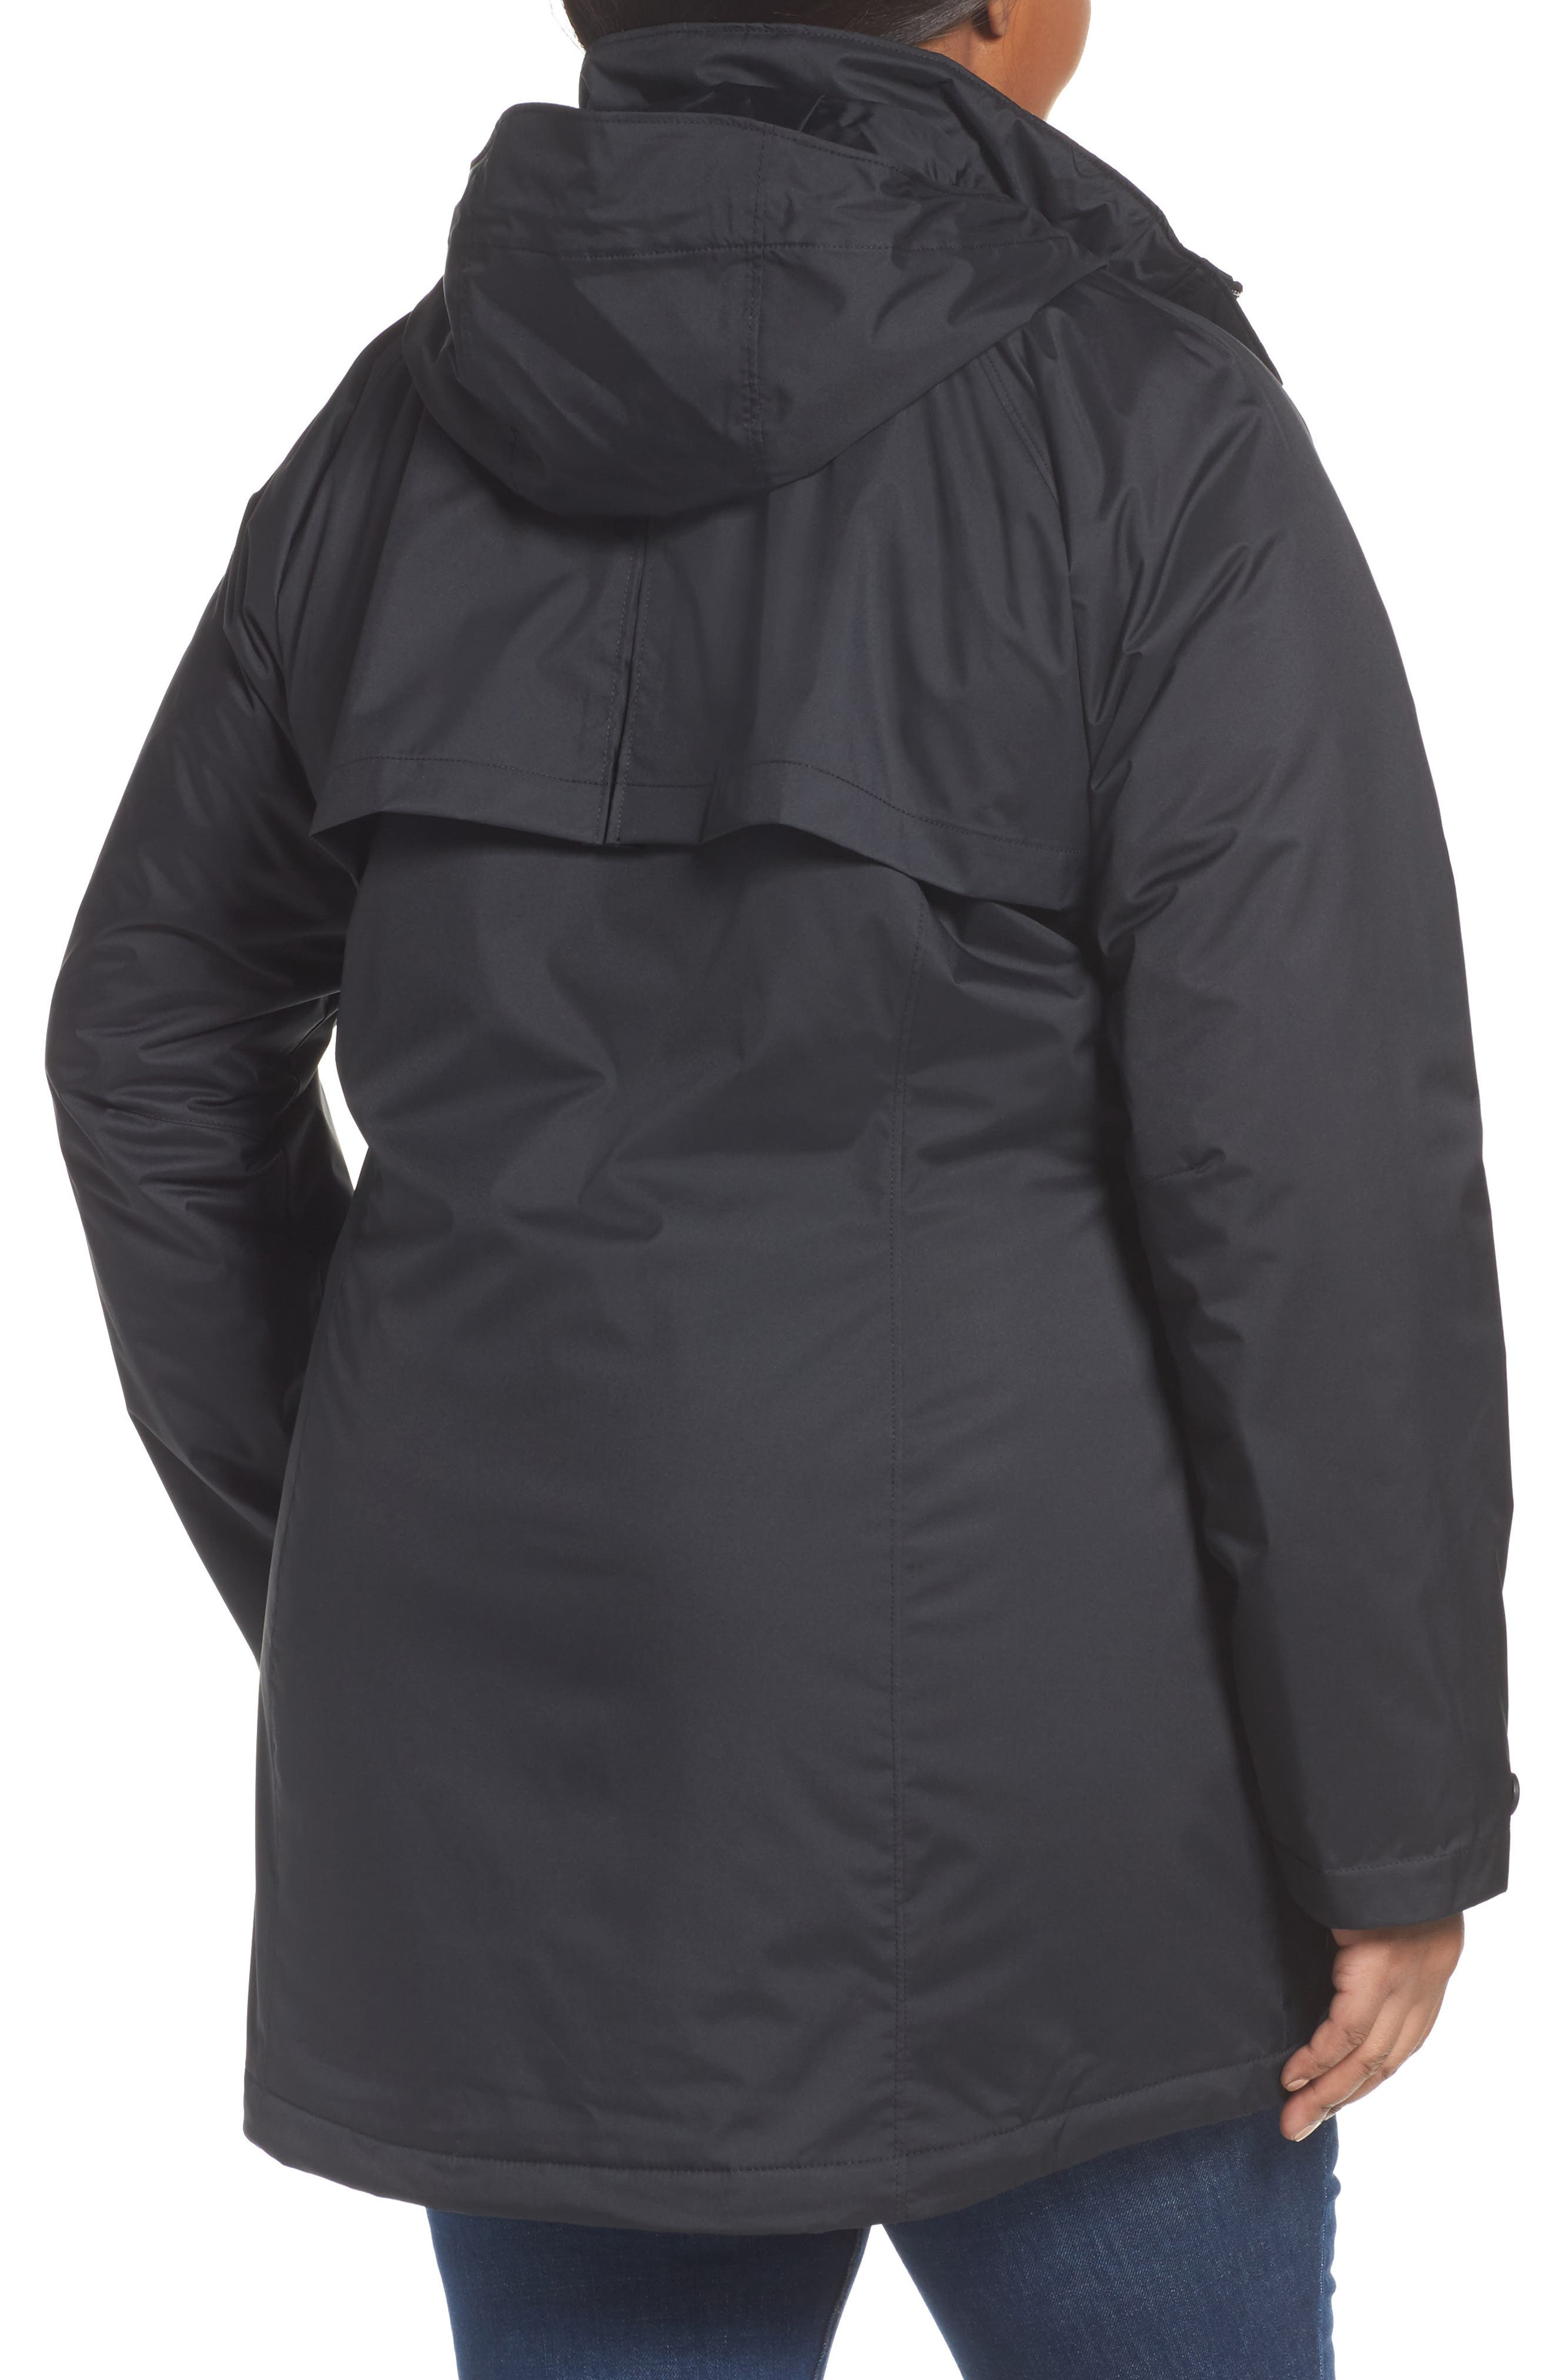 Alternate Image 2  - Columbia Lookout Crest Omni-Tech Waterproof Jacket (Plus Size)